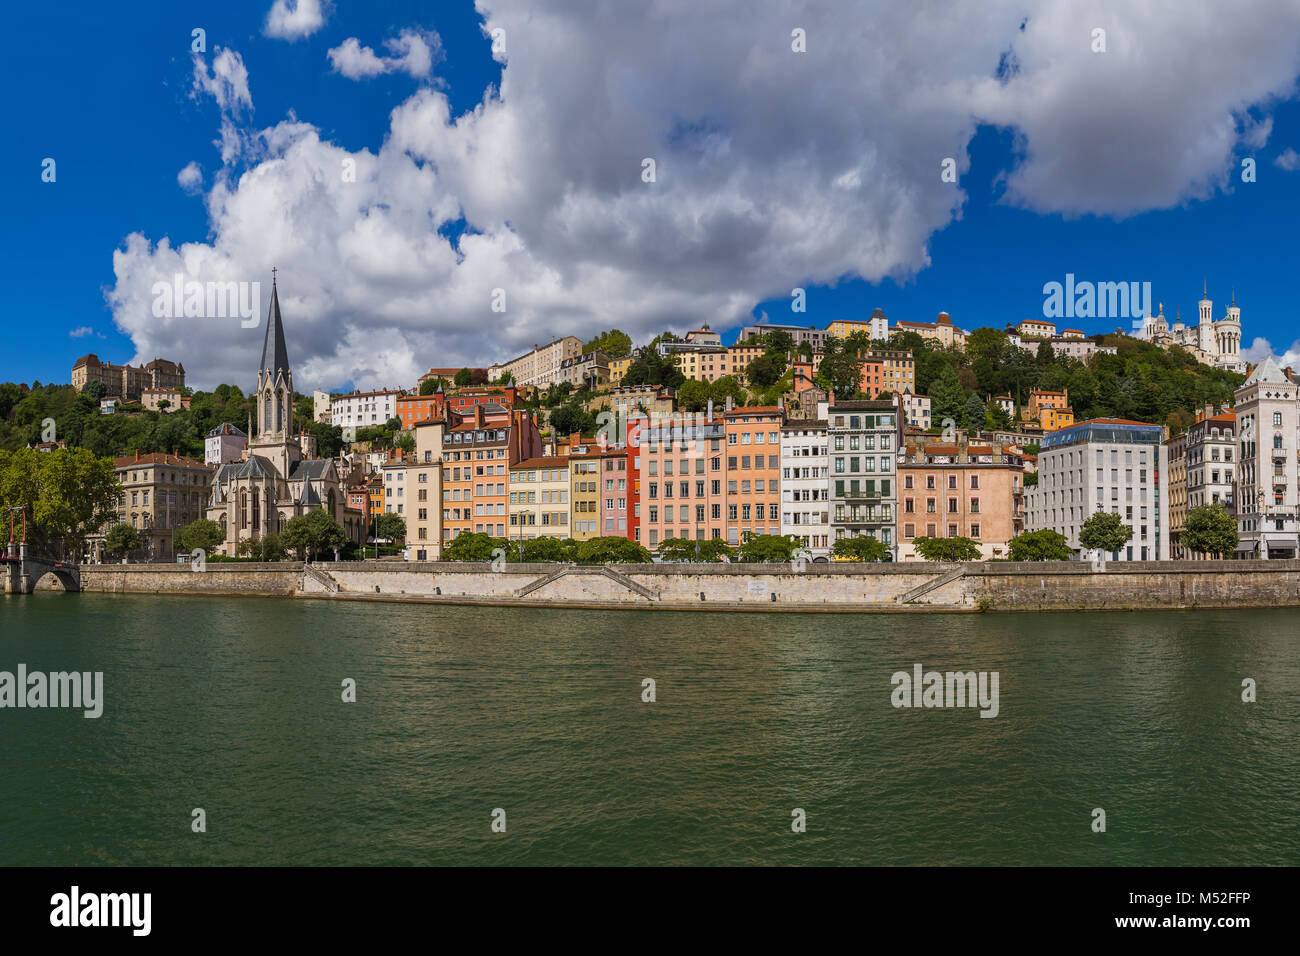 Old town of Lyon - France - Stock Image